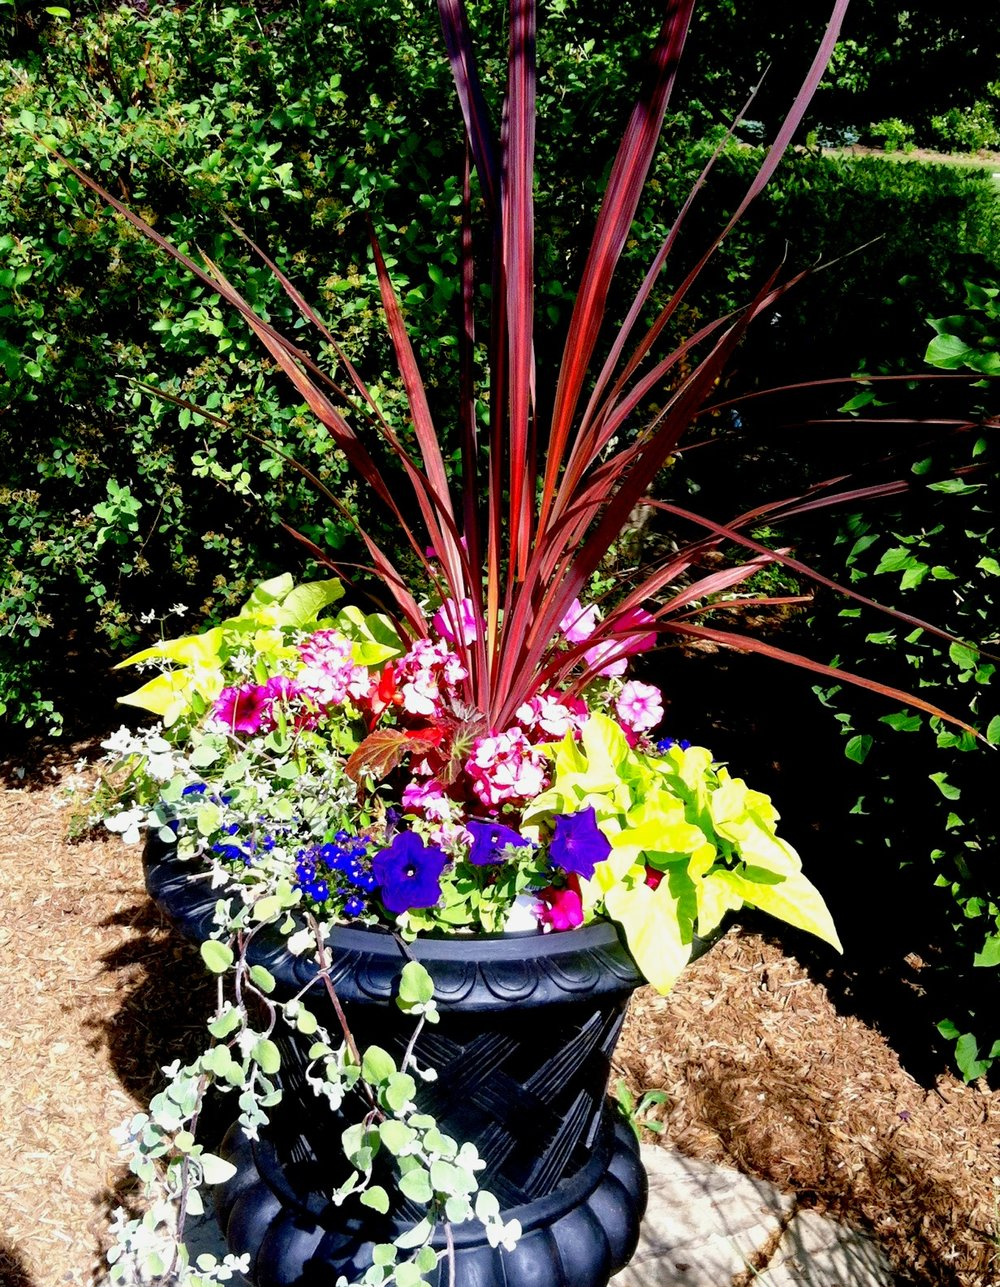 Red Cordyline steals the show in the center of this urn